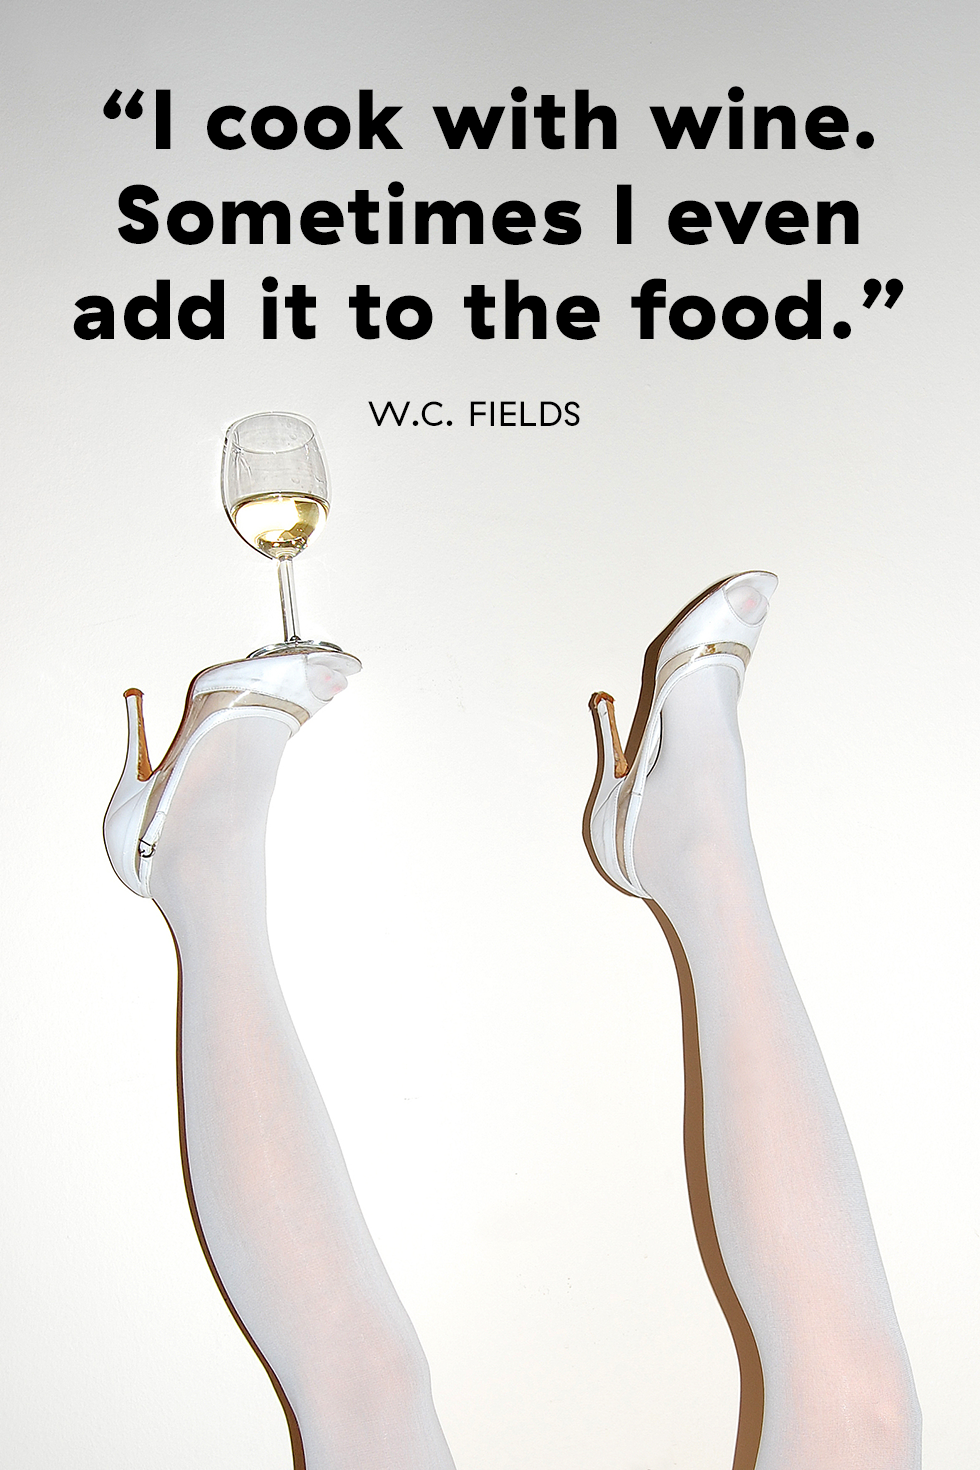 20 Of The Greatest Quotes Anyone Has Ever Said About Food Food Quotes Food Cooking